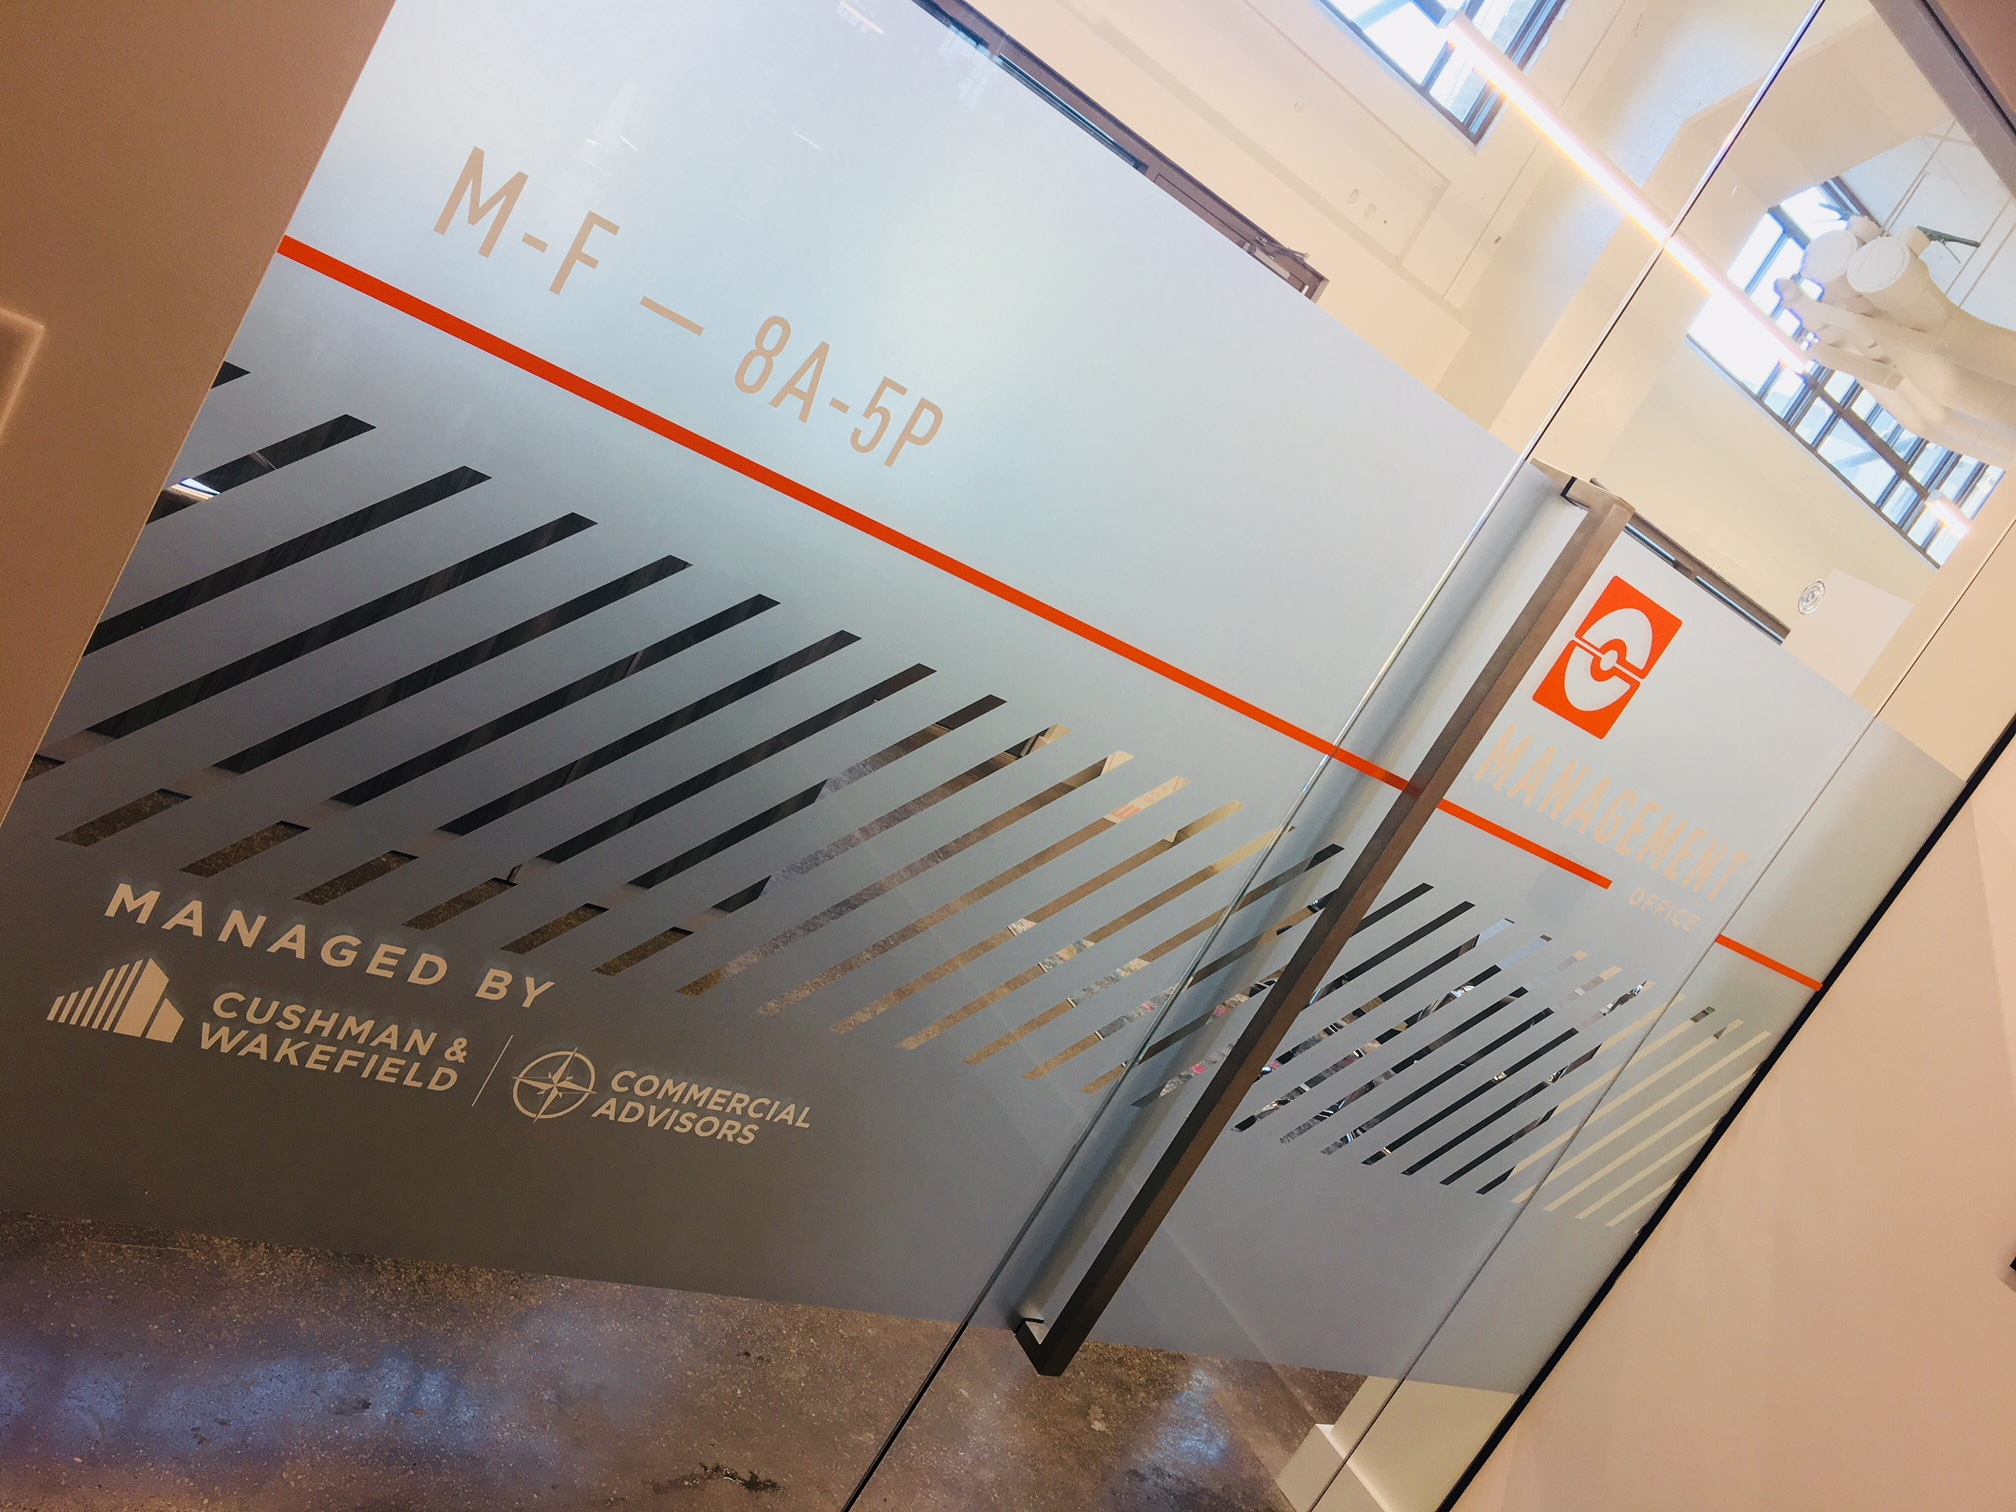 Crosstown Concourse Etched Glass w/ Vinyl Graphics